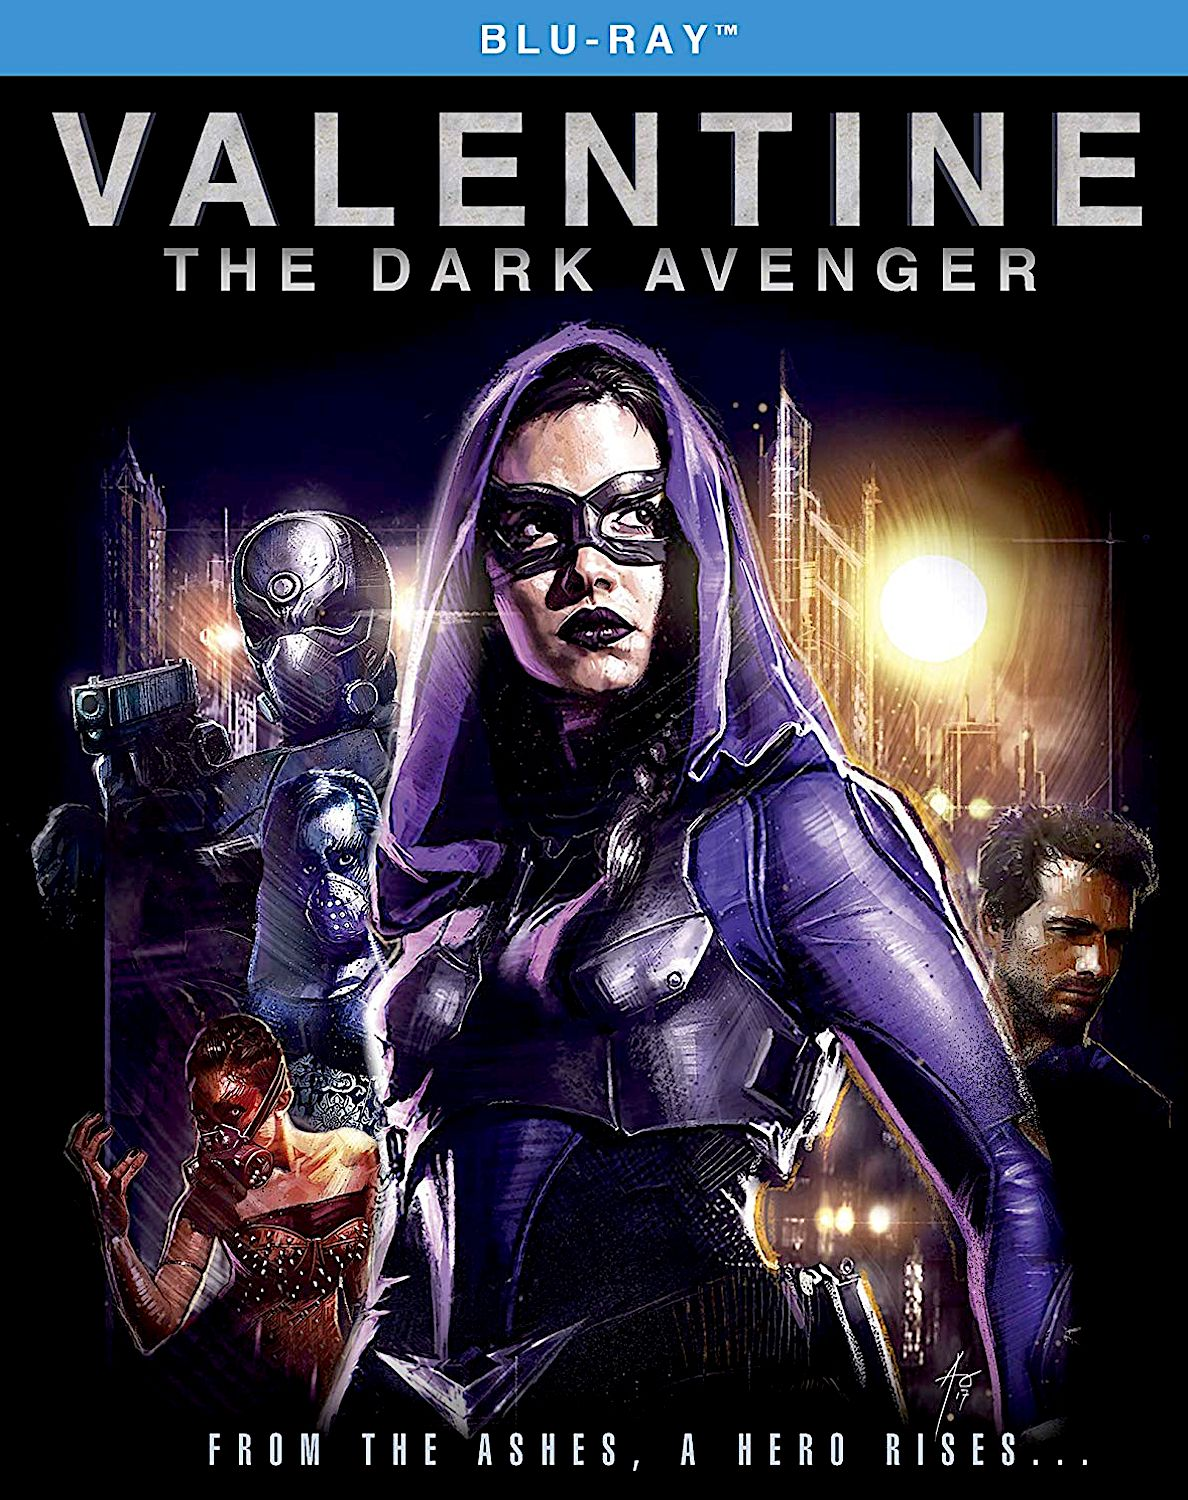 Valentine The Dark Avenger Blu Ray Shout Factory Avengers Movies Avengers Hd Movies